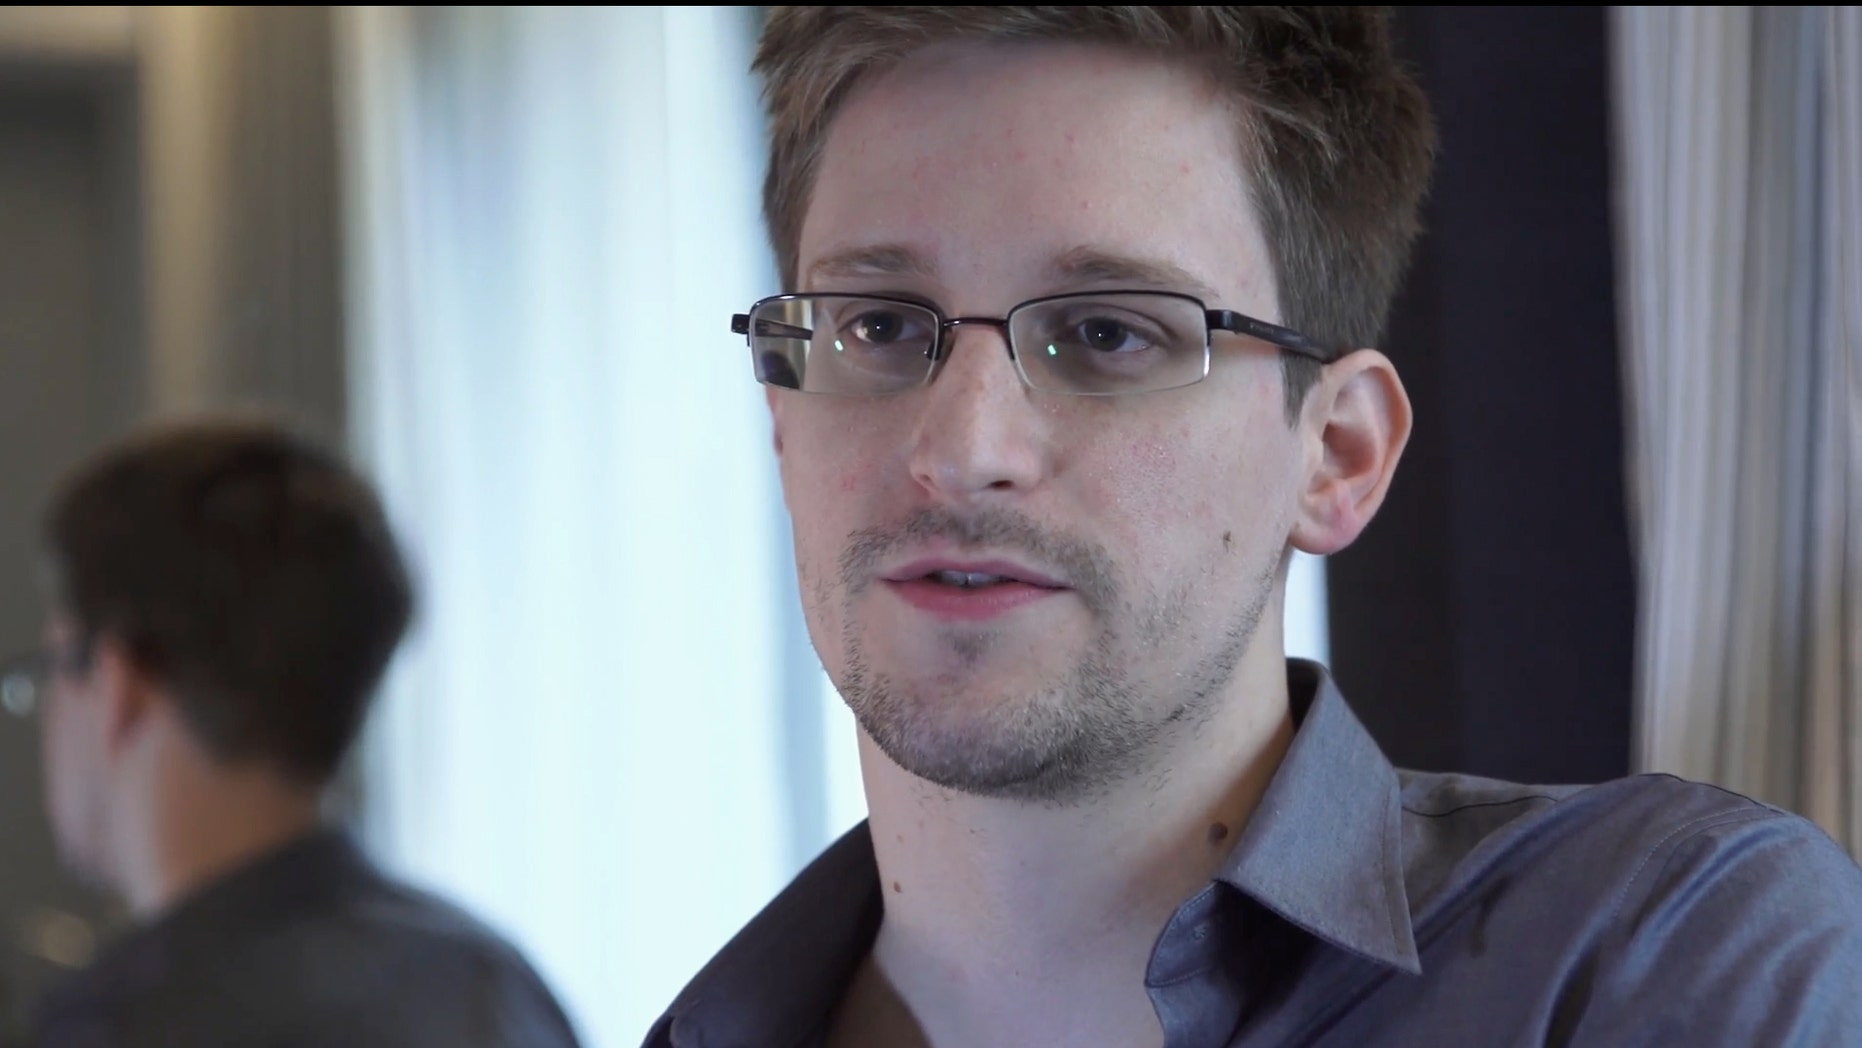 "FILE - This June 9, 2013 file photo provided by The Guardian Newspaper in London shows National Security Agency leaker Edward Snowden, in Hong Kong. Snowden says his ""mission's already accomplished"" after leaking NSA secrets that have caused a reassessment of U.S. surveillance policies. Snowden told The Washington Post in a story published online Monday night, Dec. 23, 2013, he has ""already won"" because journalists have been able to tell the story of the government's collection of bulk Internet and phone records. (AP Photo/The Guardian, Glenn Greenwald and Laura Poitras, File)"